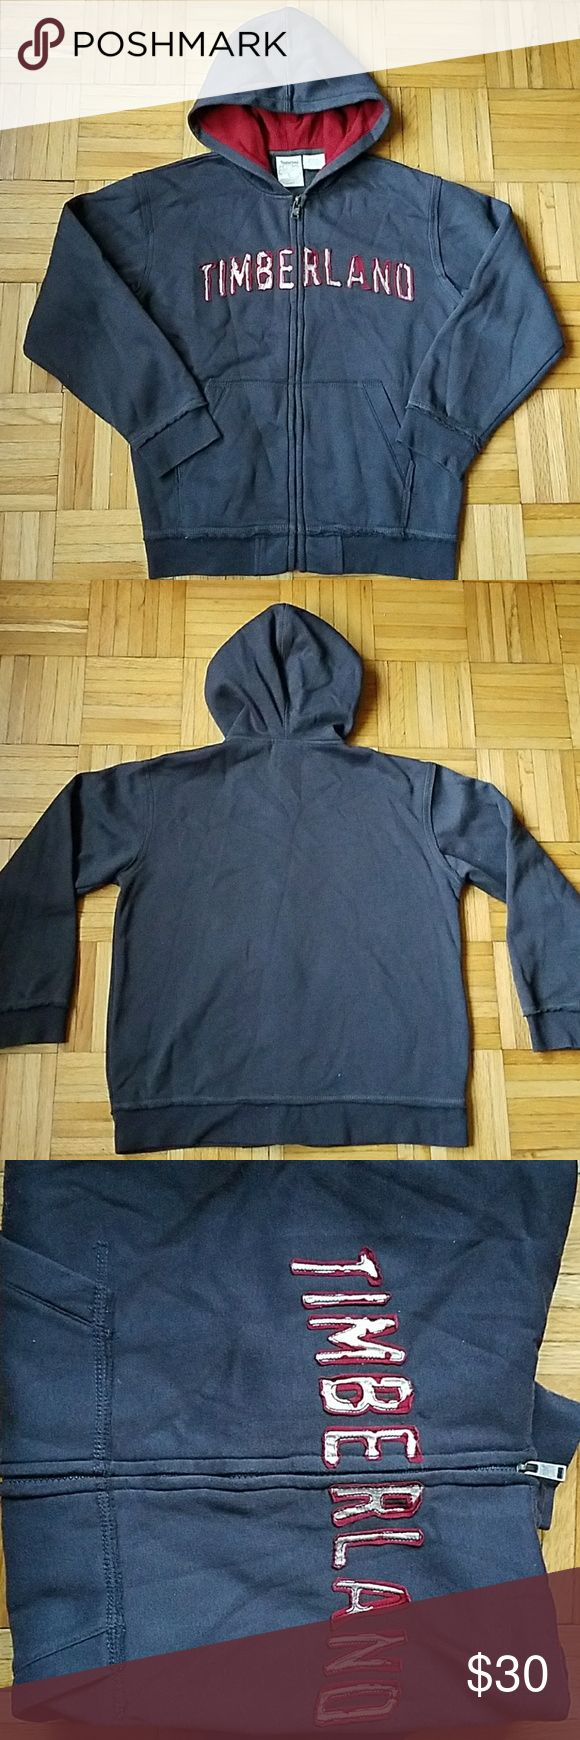 Timberland Hoodie Worn a couple of times! Timberland Distressed Logo Hoodie   -boy's size medium  (12-14) -distressed timberland logo (See 1st photo) and frayed edges around the upper part of the hem (See 4th photo). This is part of the design/style of the hoodie.  -color is charcoalish blue. Color looks slightly different in direct light. Timberland Jackets & Coats